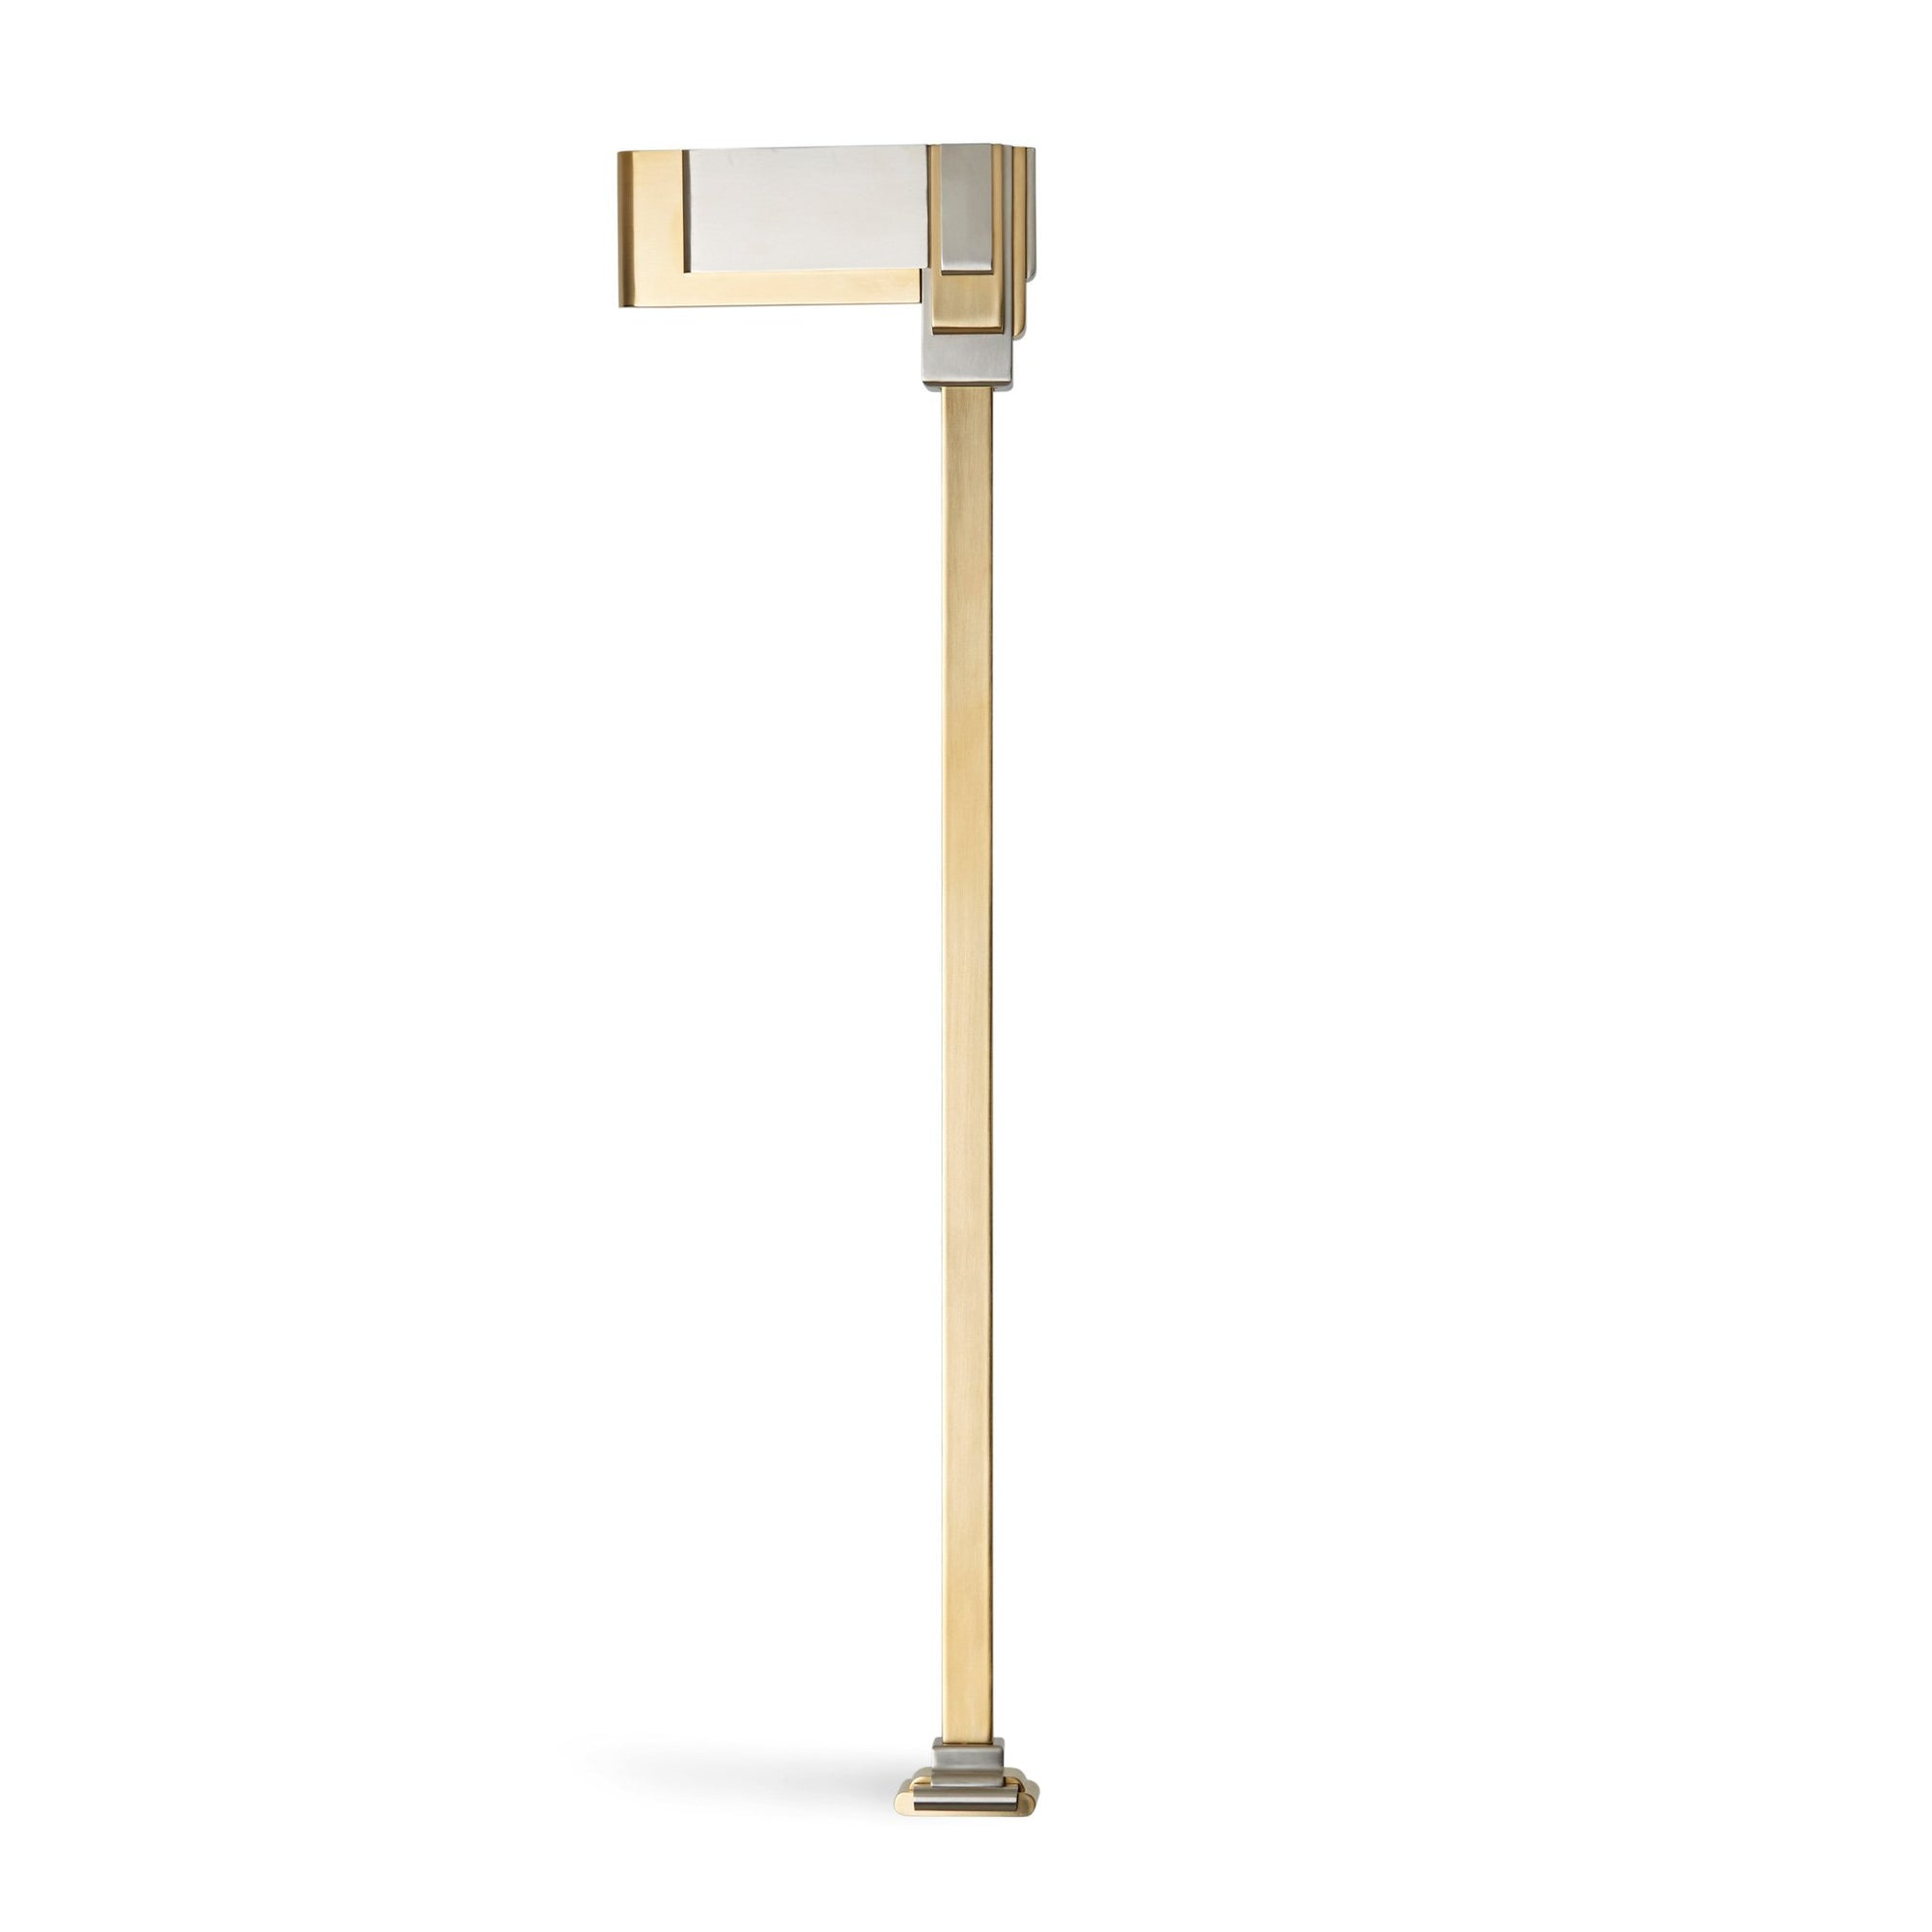 4764-GP_BN Sherle Wagner International Nouveau Leg in Gold Plate and Brushed Nickel metal finish